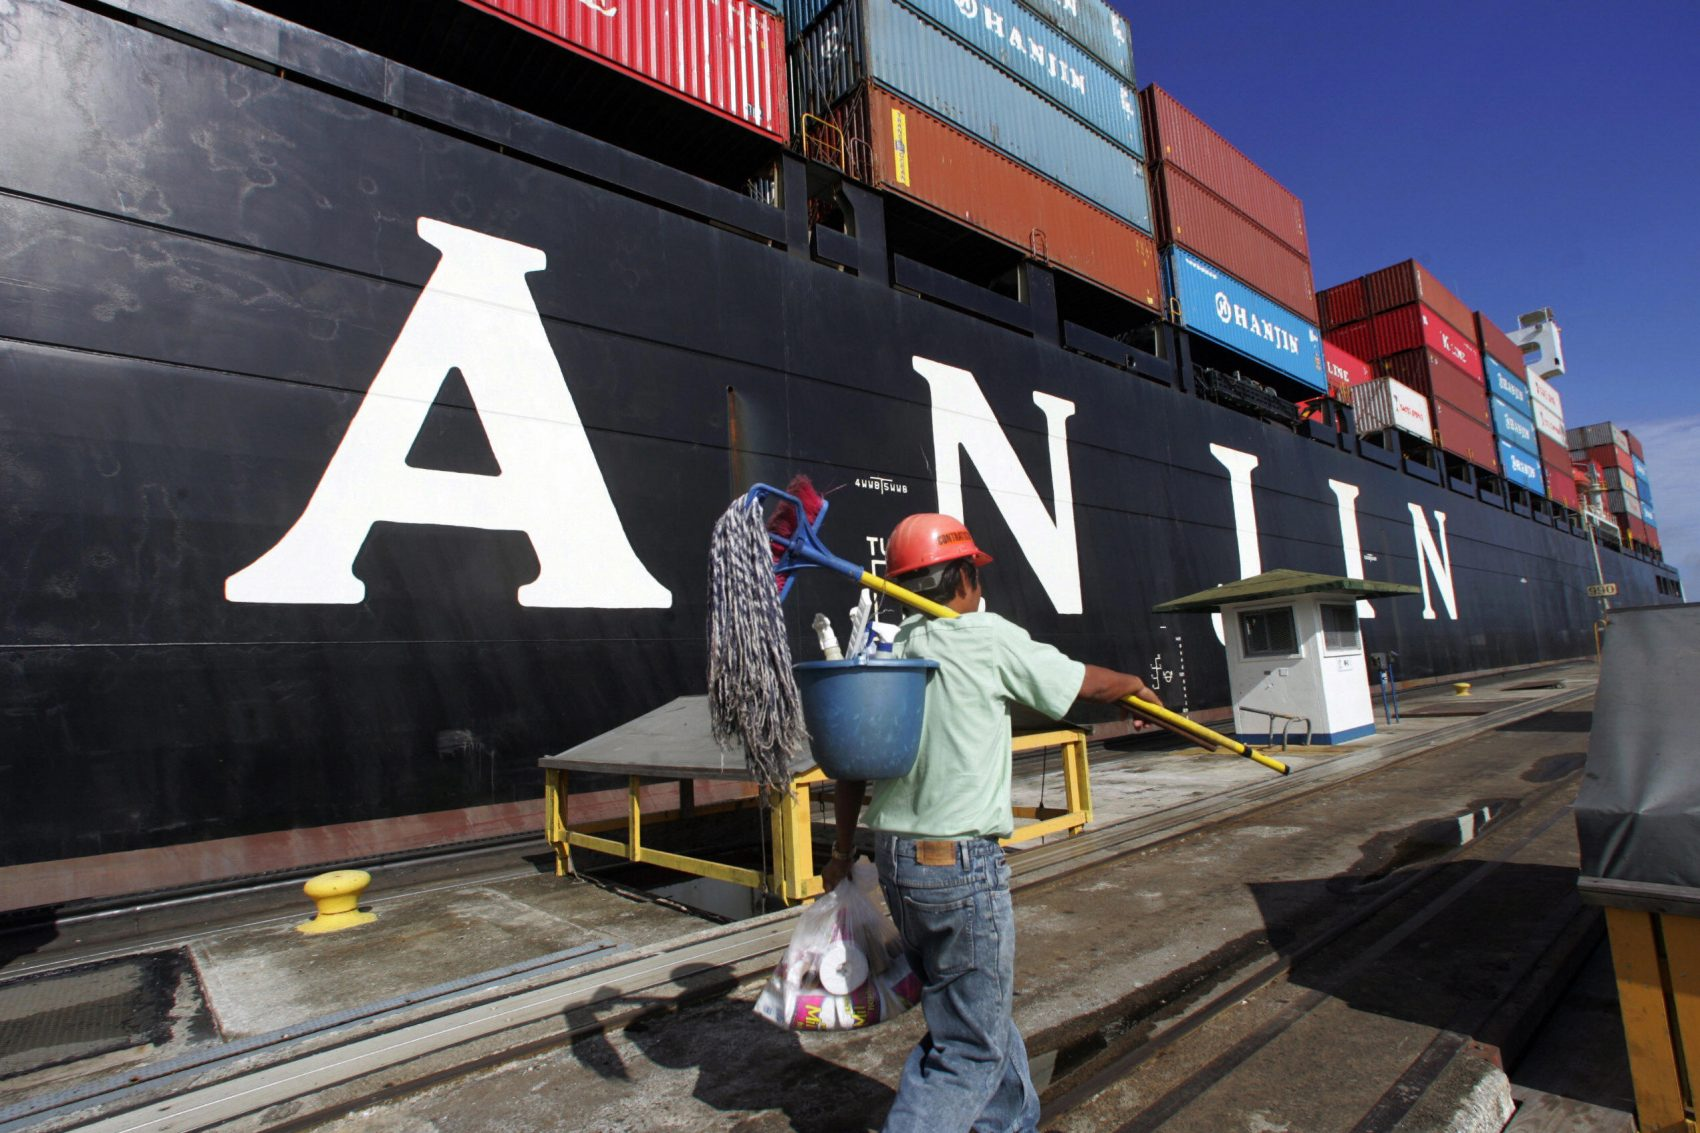 South korea s hanjin files for bankruptcy leaving american shippers